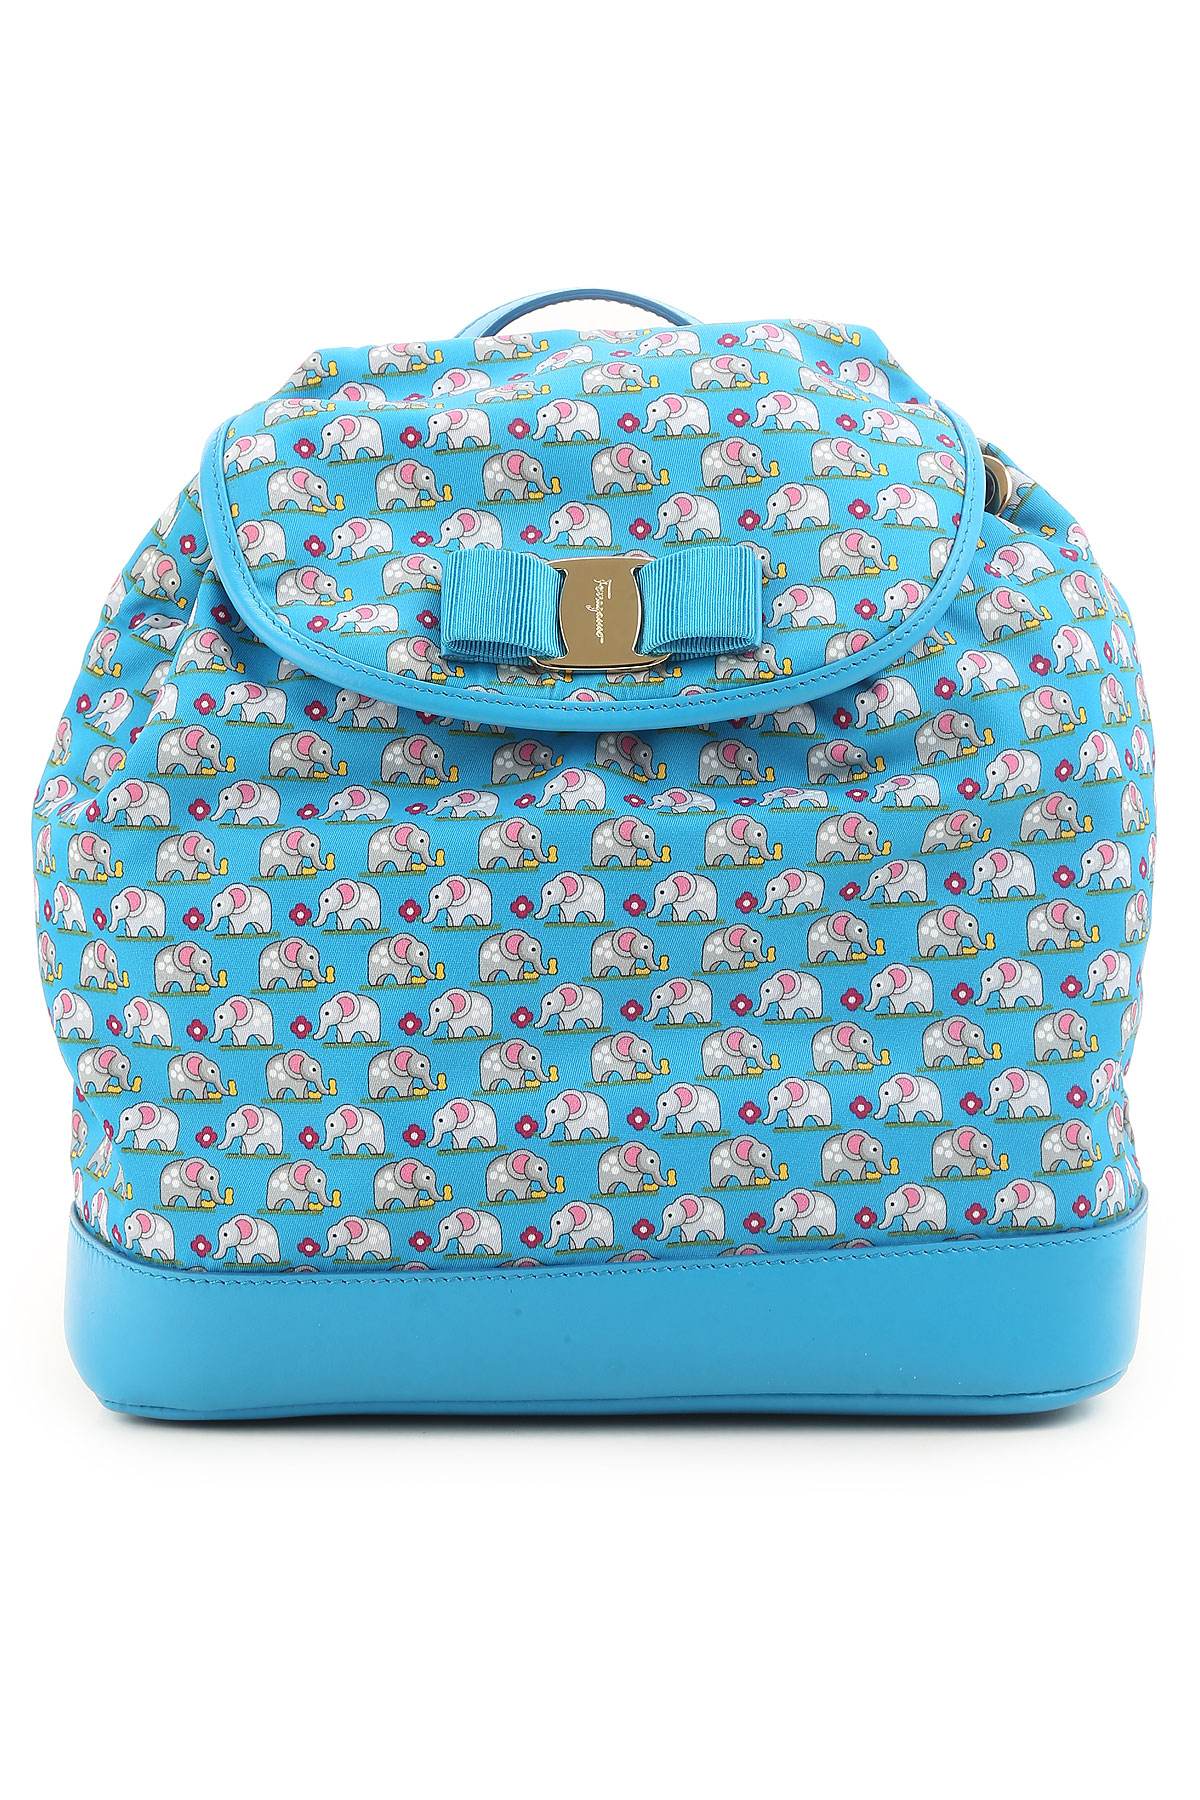 Image of Salvatore Ferragamo Backpack for Women On Sale in Outlet, Light Blue, Nylon, 2017